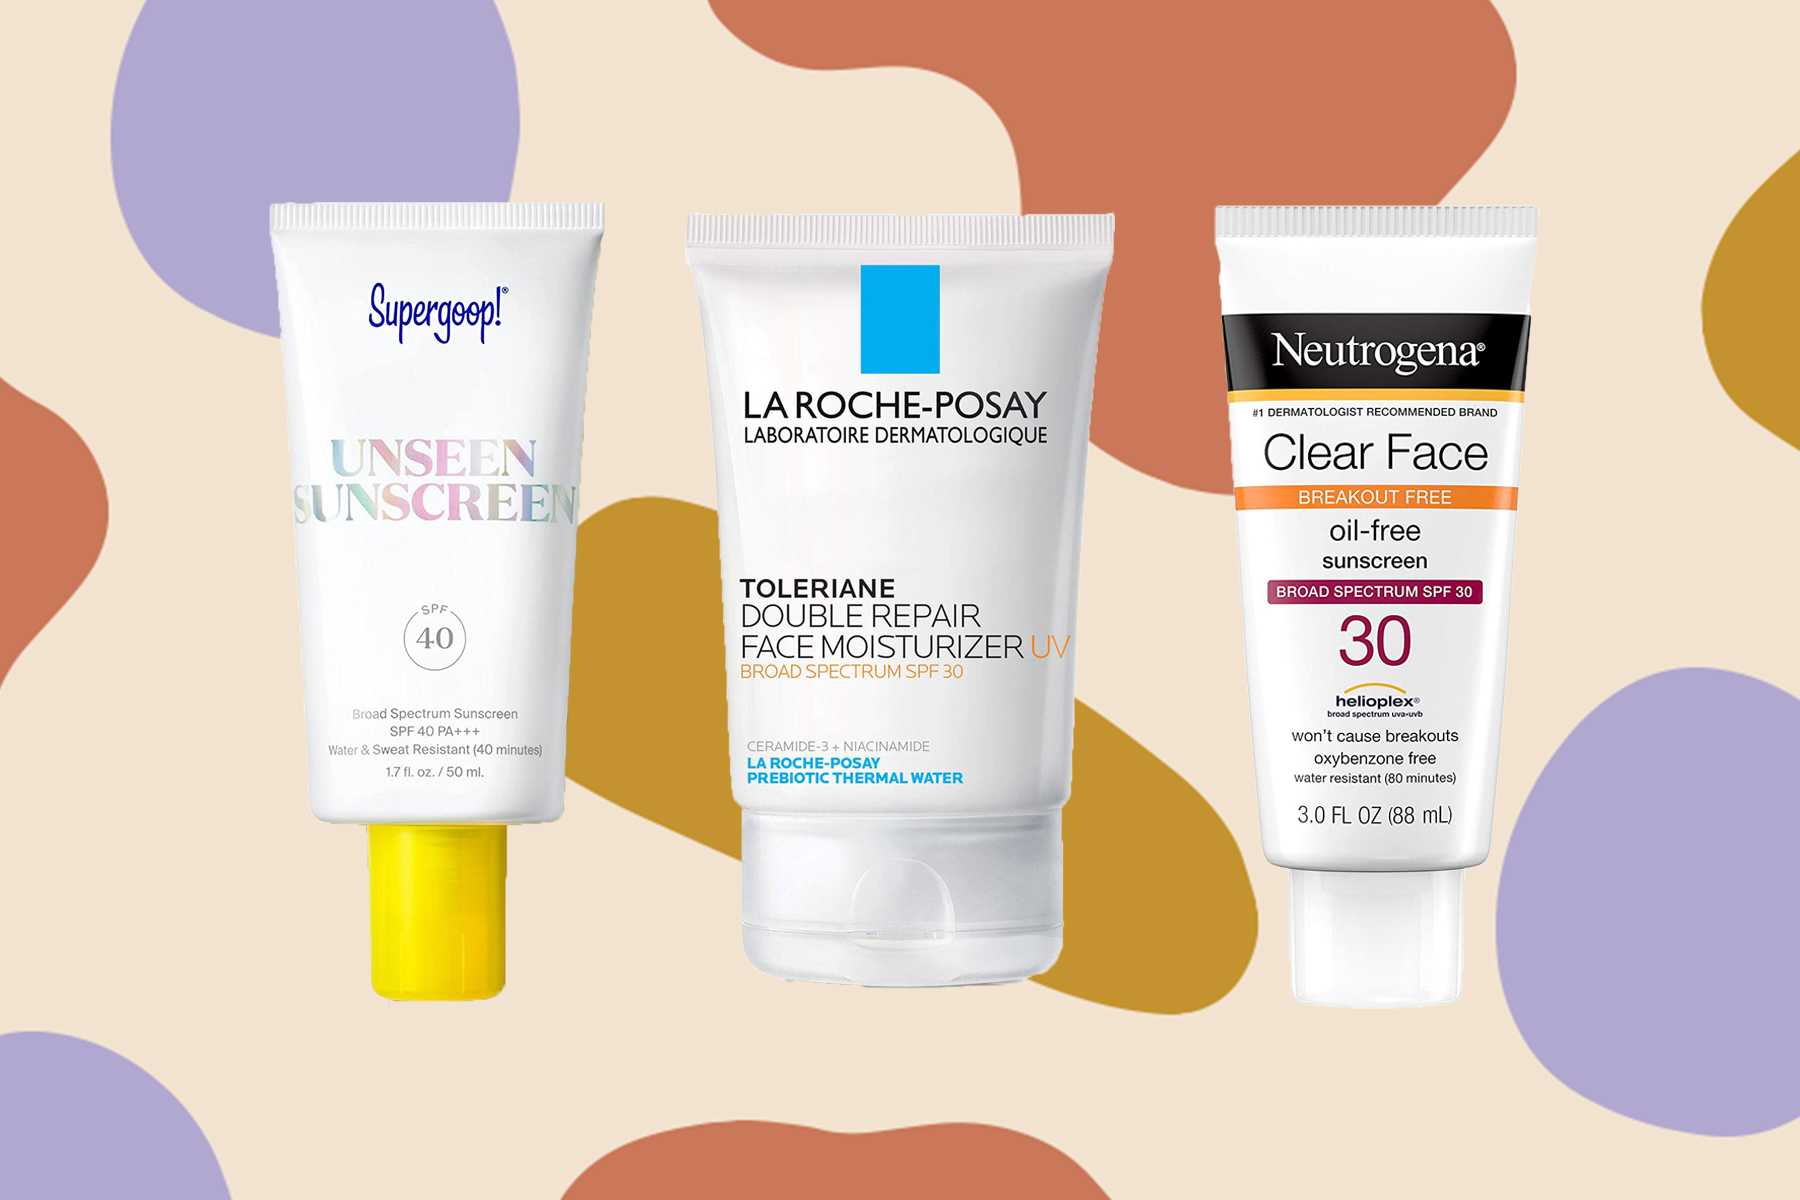 ewg sunscreens